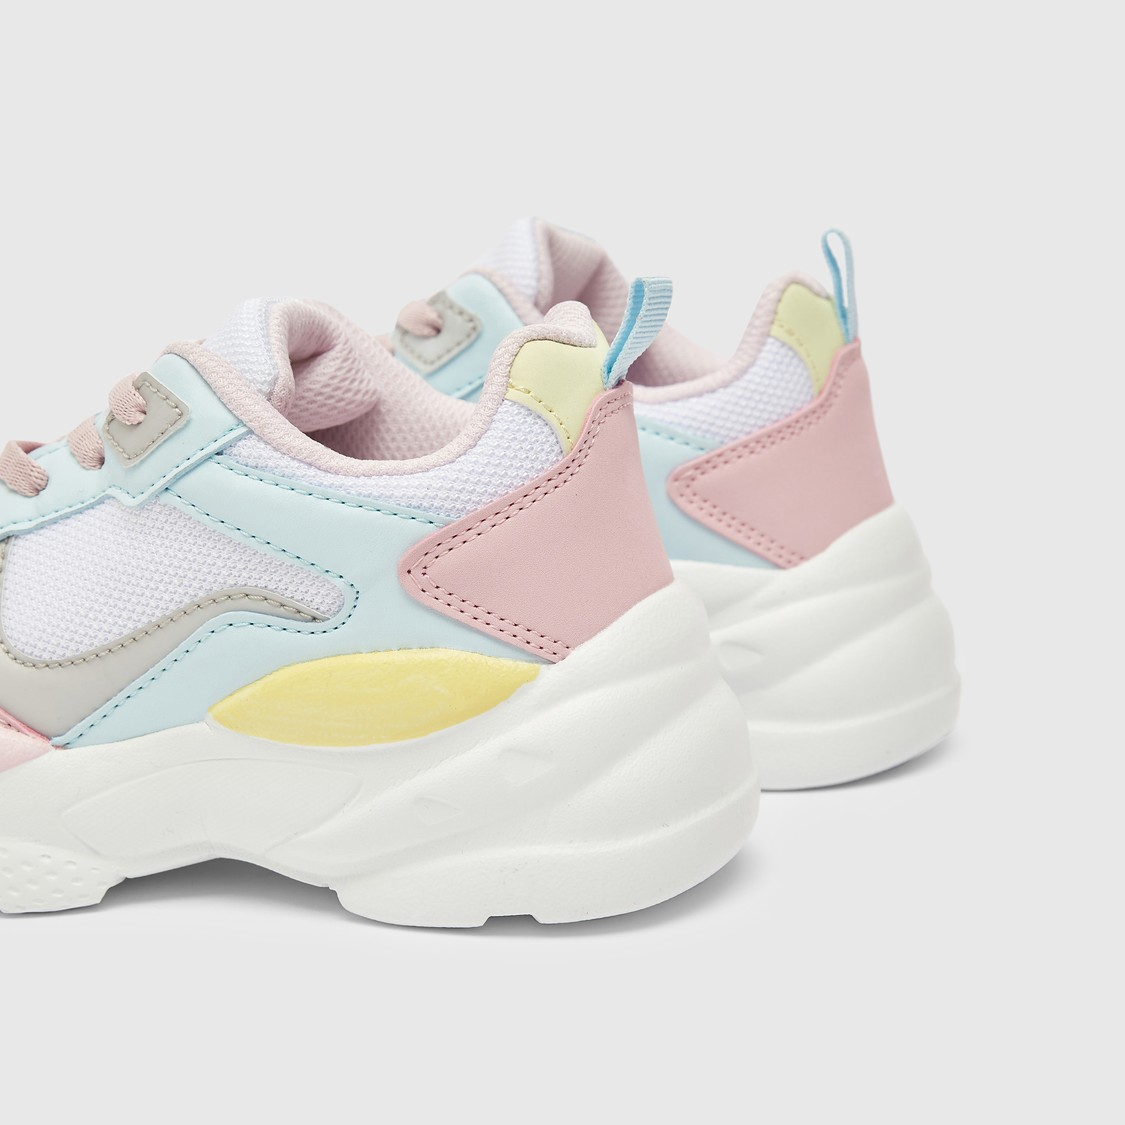 Panelled Chunky Sneakers with Lace-Up Closure